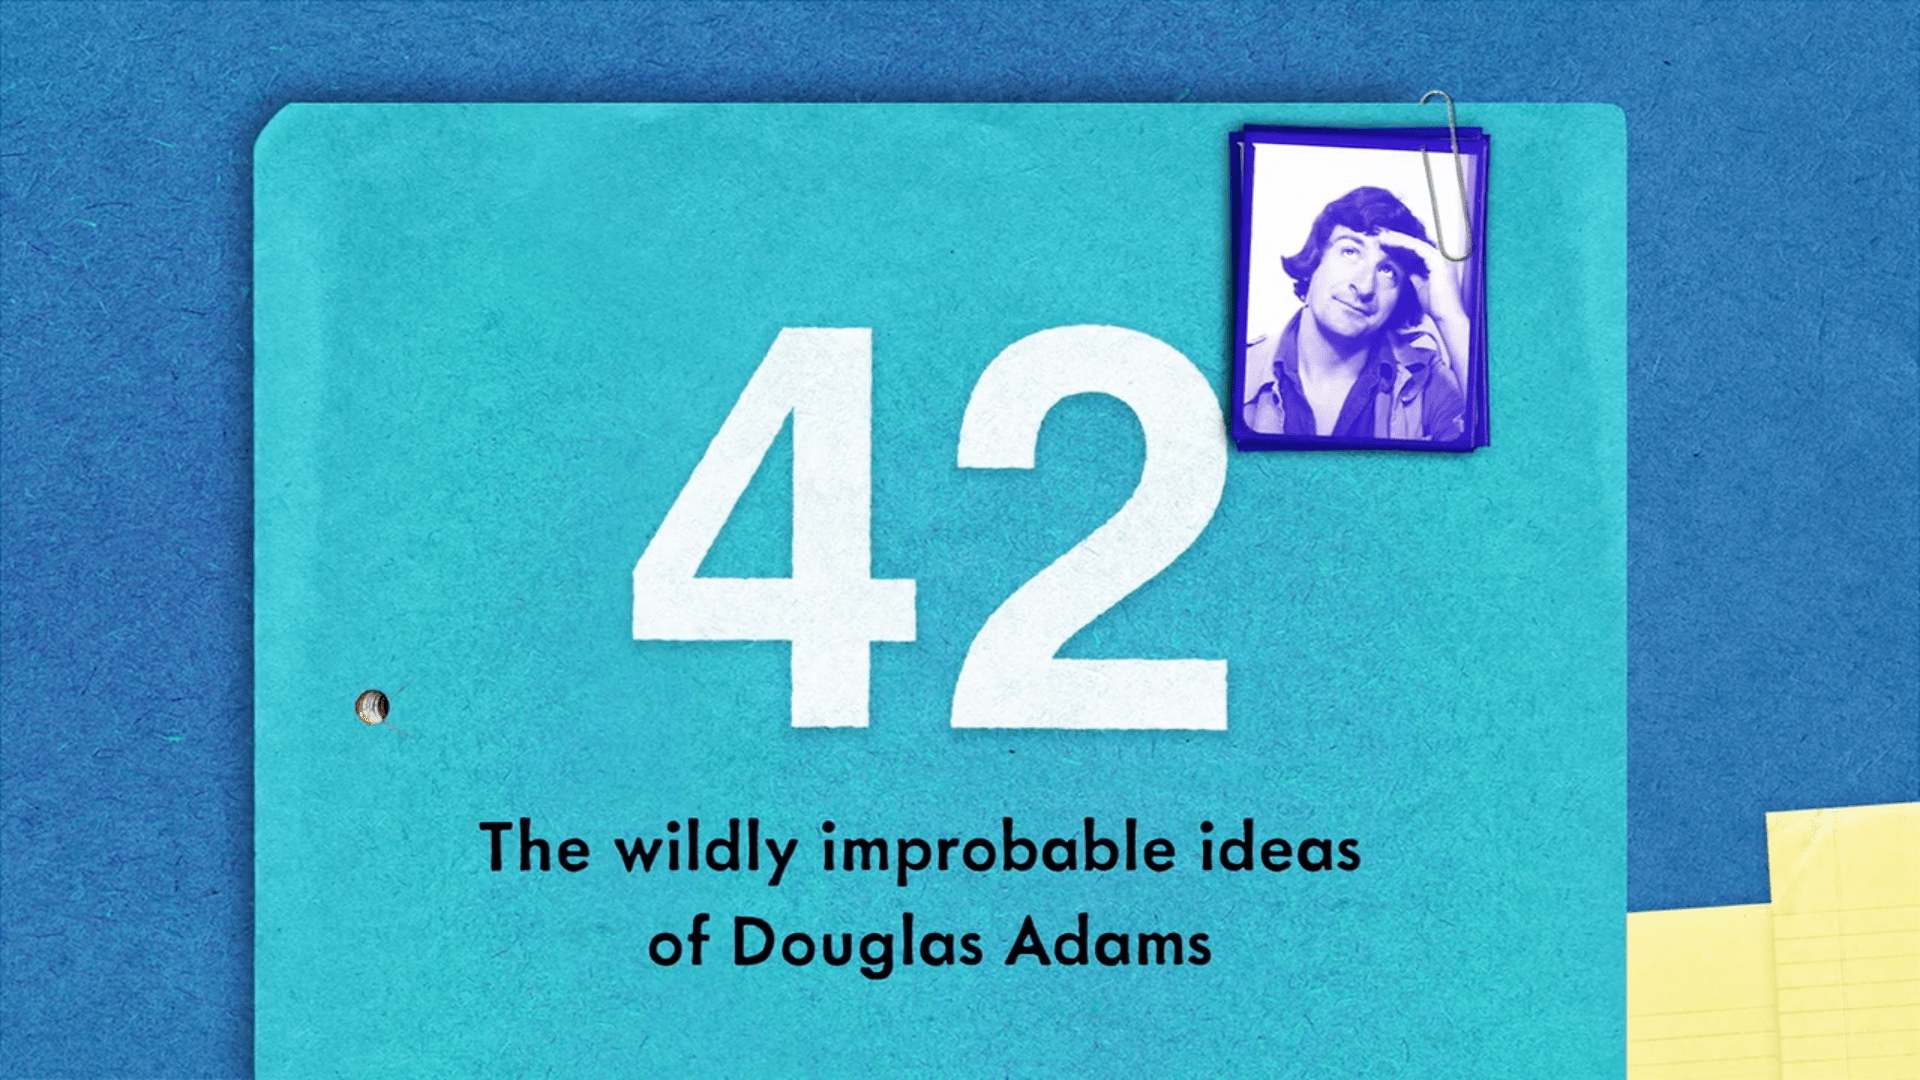 A New Collection of Douglas Adams' Writing Has Been Funded on Kickstarter